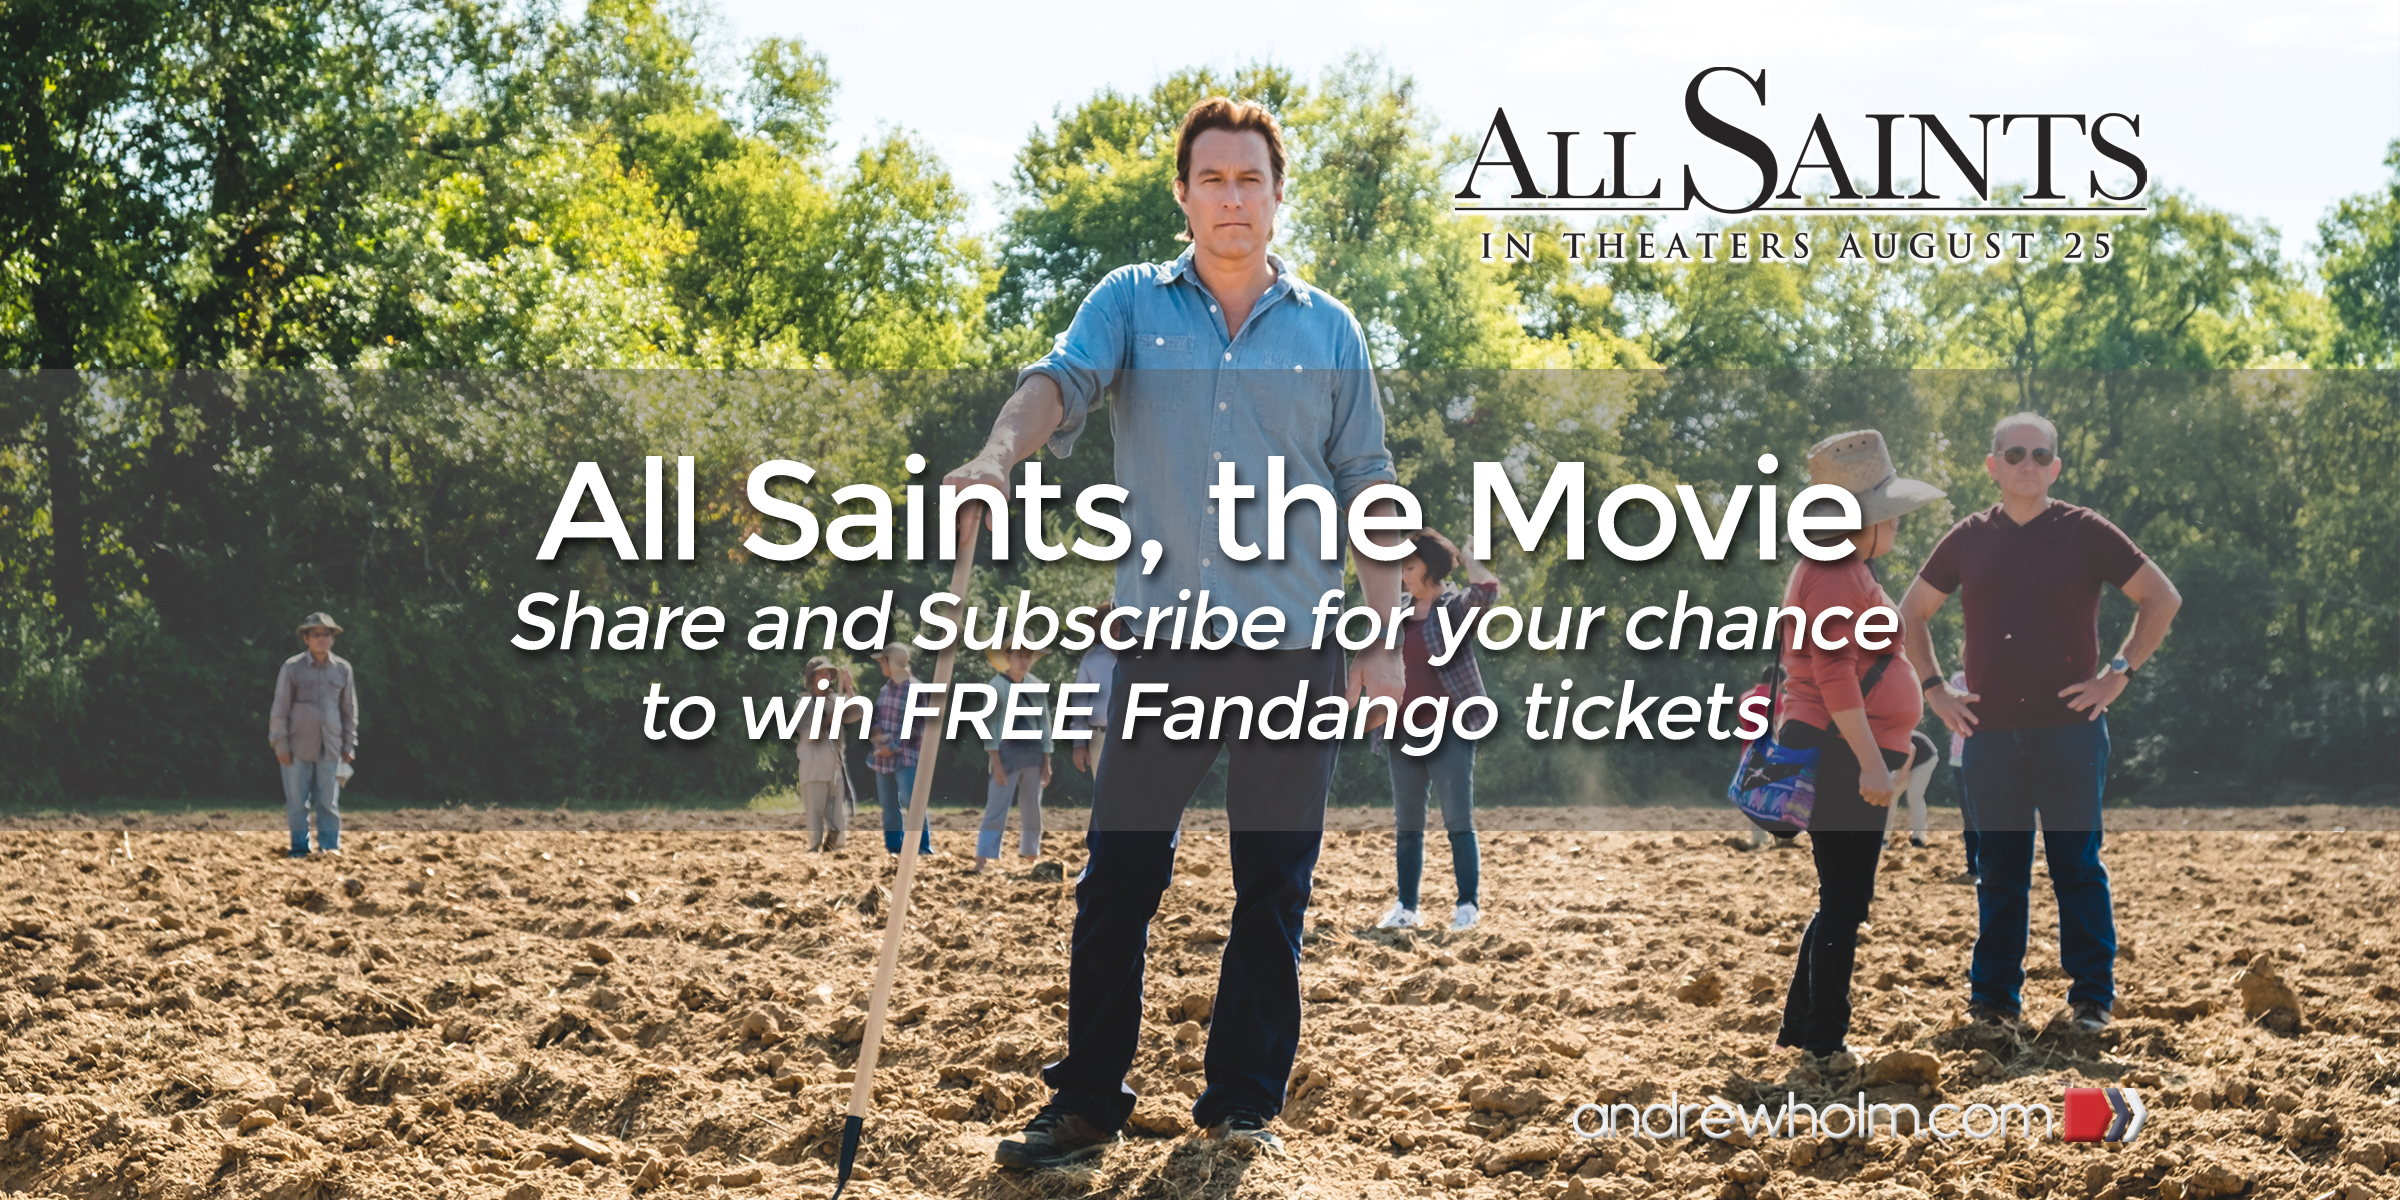 REVIEW: All Saints, the Movie